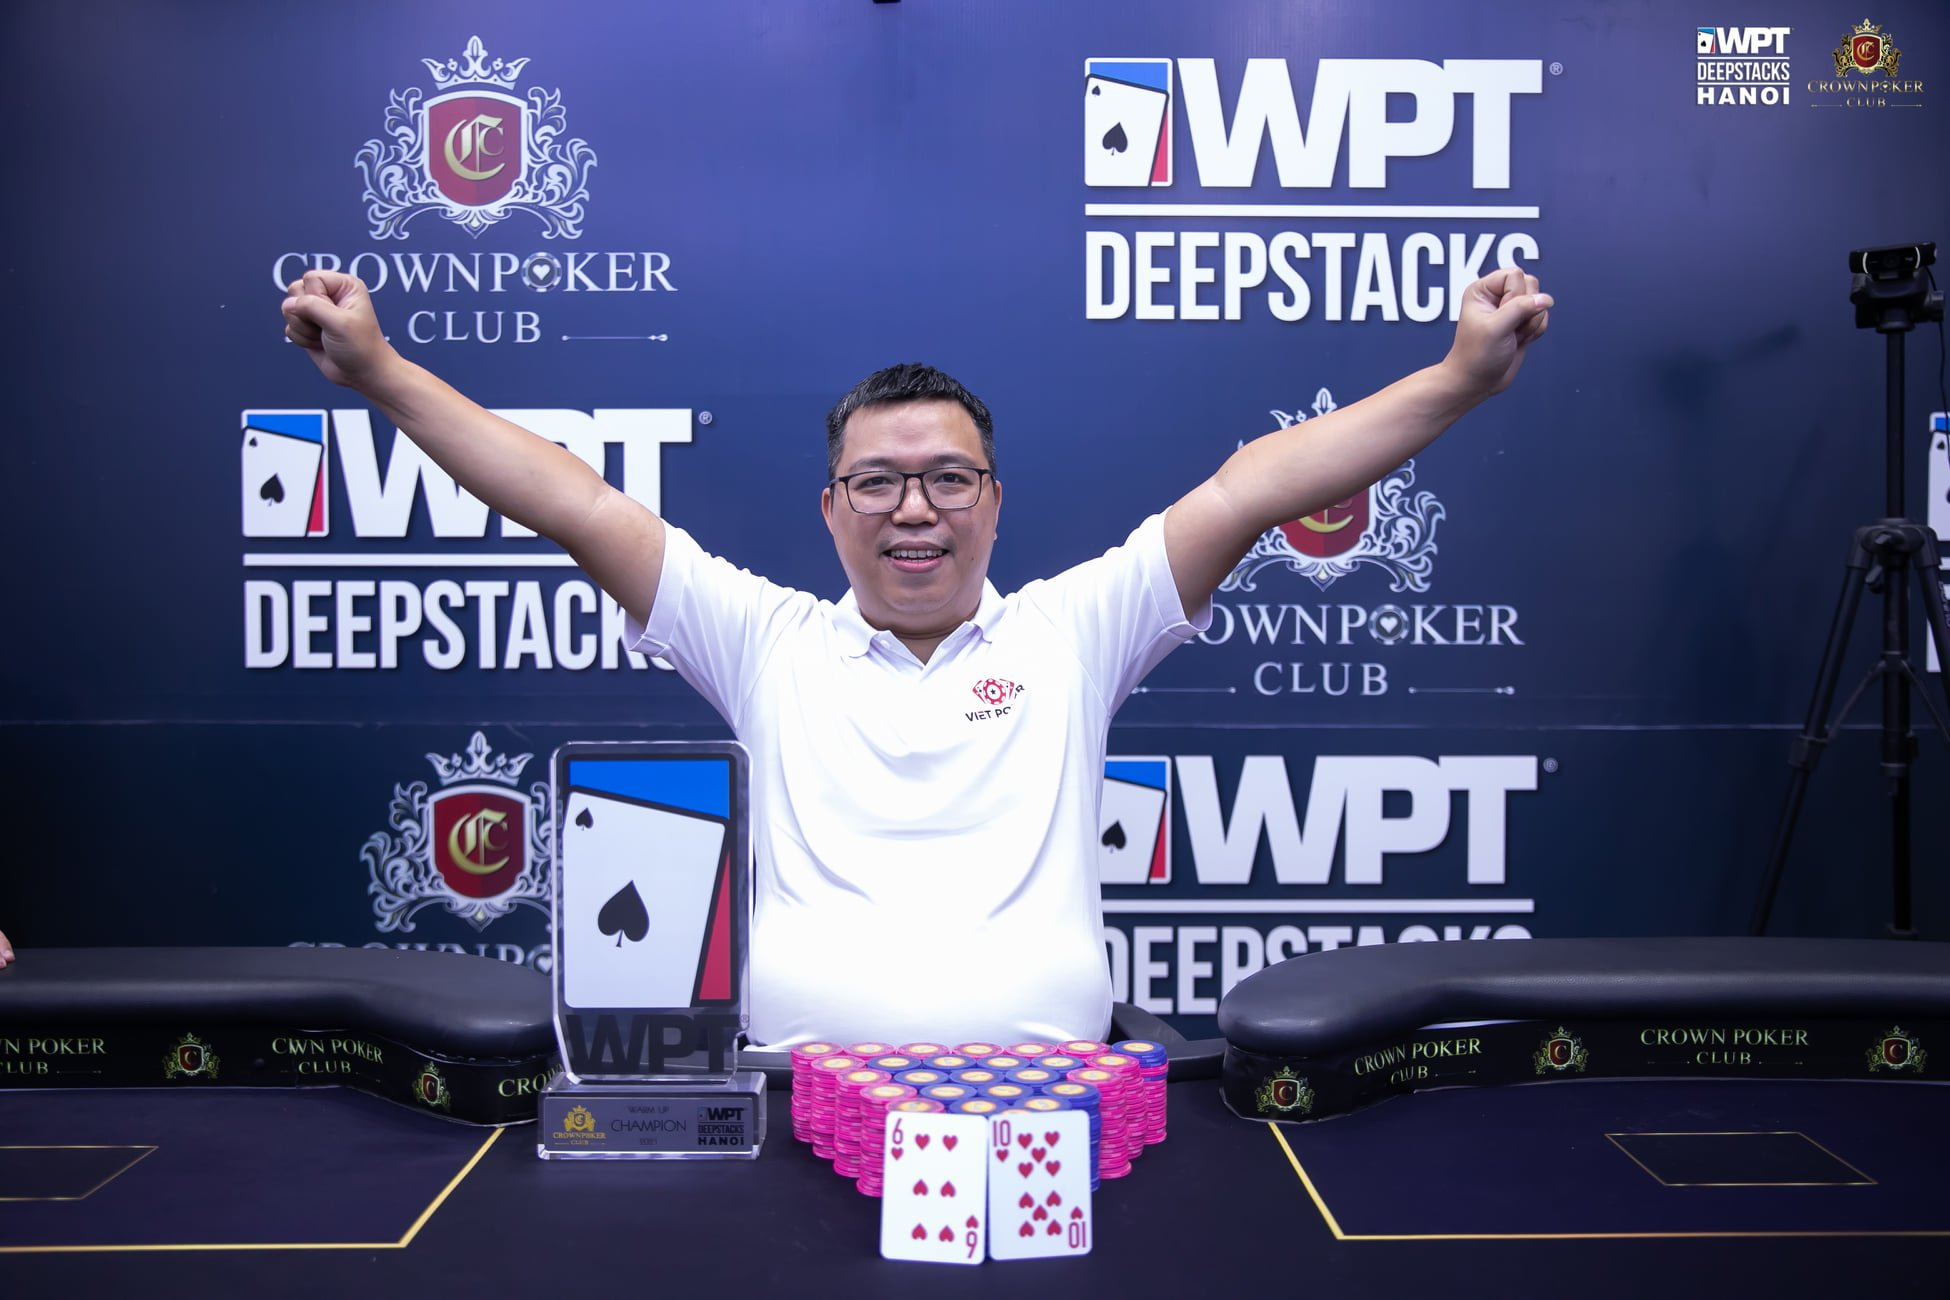 WPTDeepStacks Hanoi: Four way deal awards Pham Bao the Warm Up Event win; Nguyễn Gia Trung claims Single Day HR, Trần Đức Toàn wins Superstack